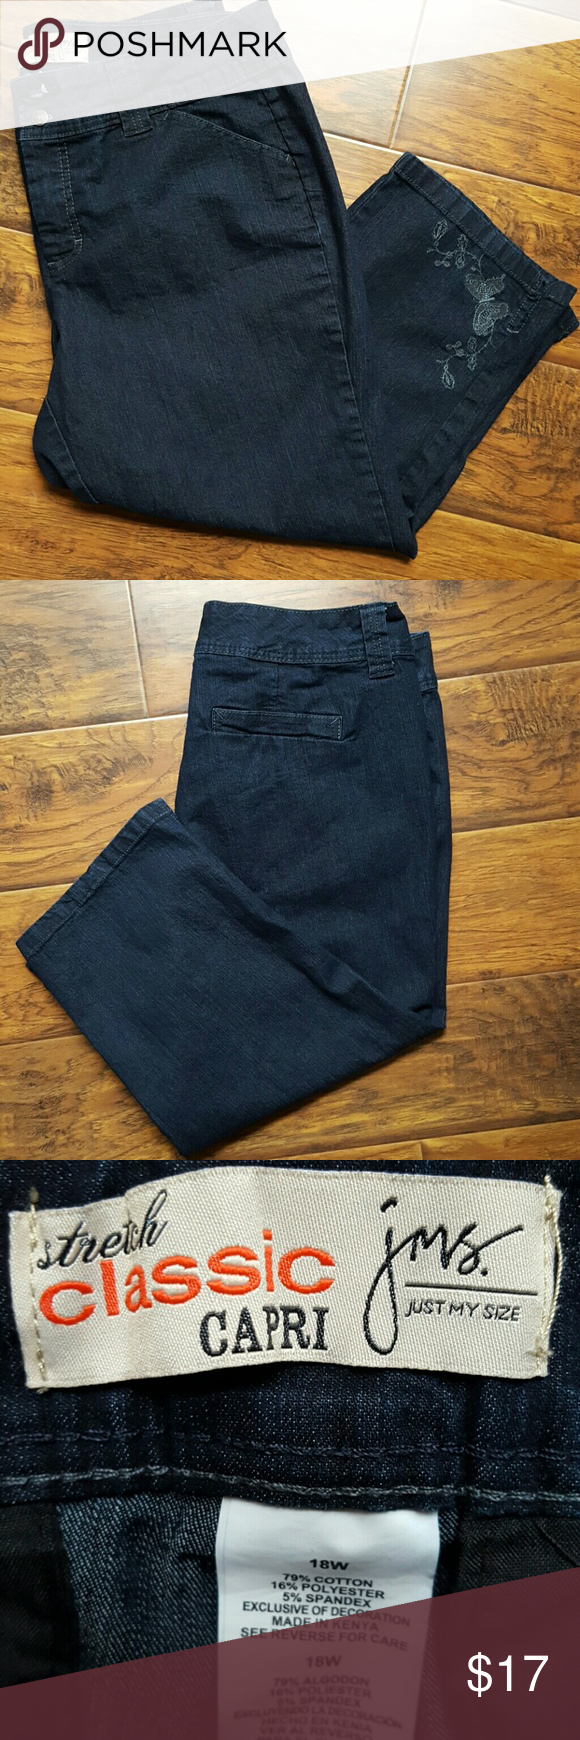 Denim stretch classic Capri Just My Size sz 18W Nice dark denim stretch classic Capri Just My Size sz 18W.   Bundle 2 or more items and save 15% instantly at checkout! Just My Size Pants Capris